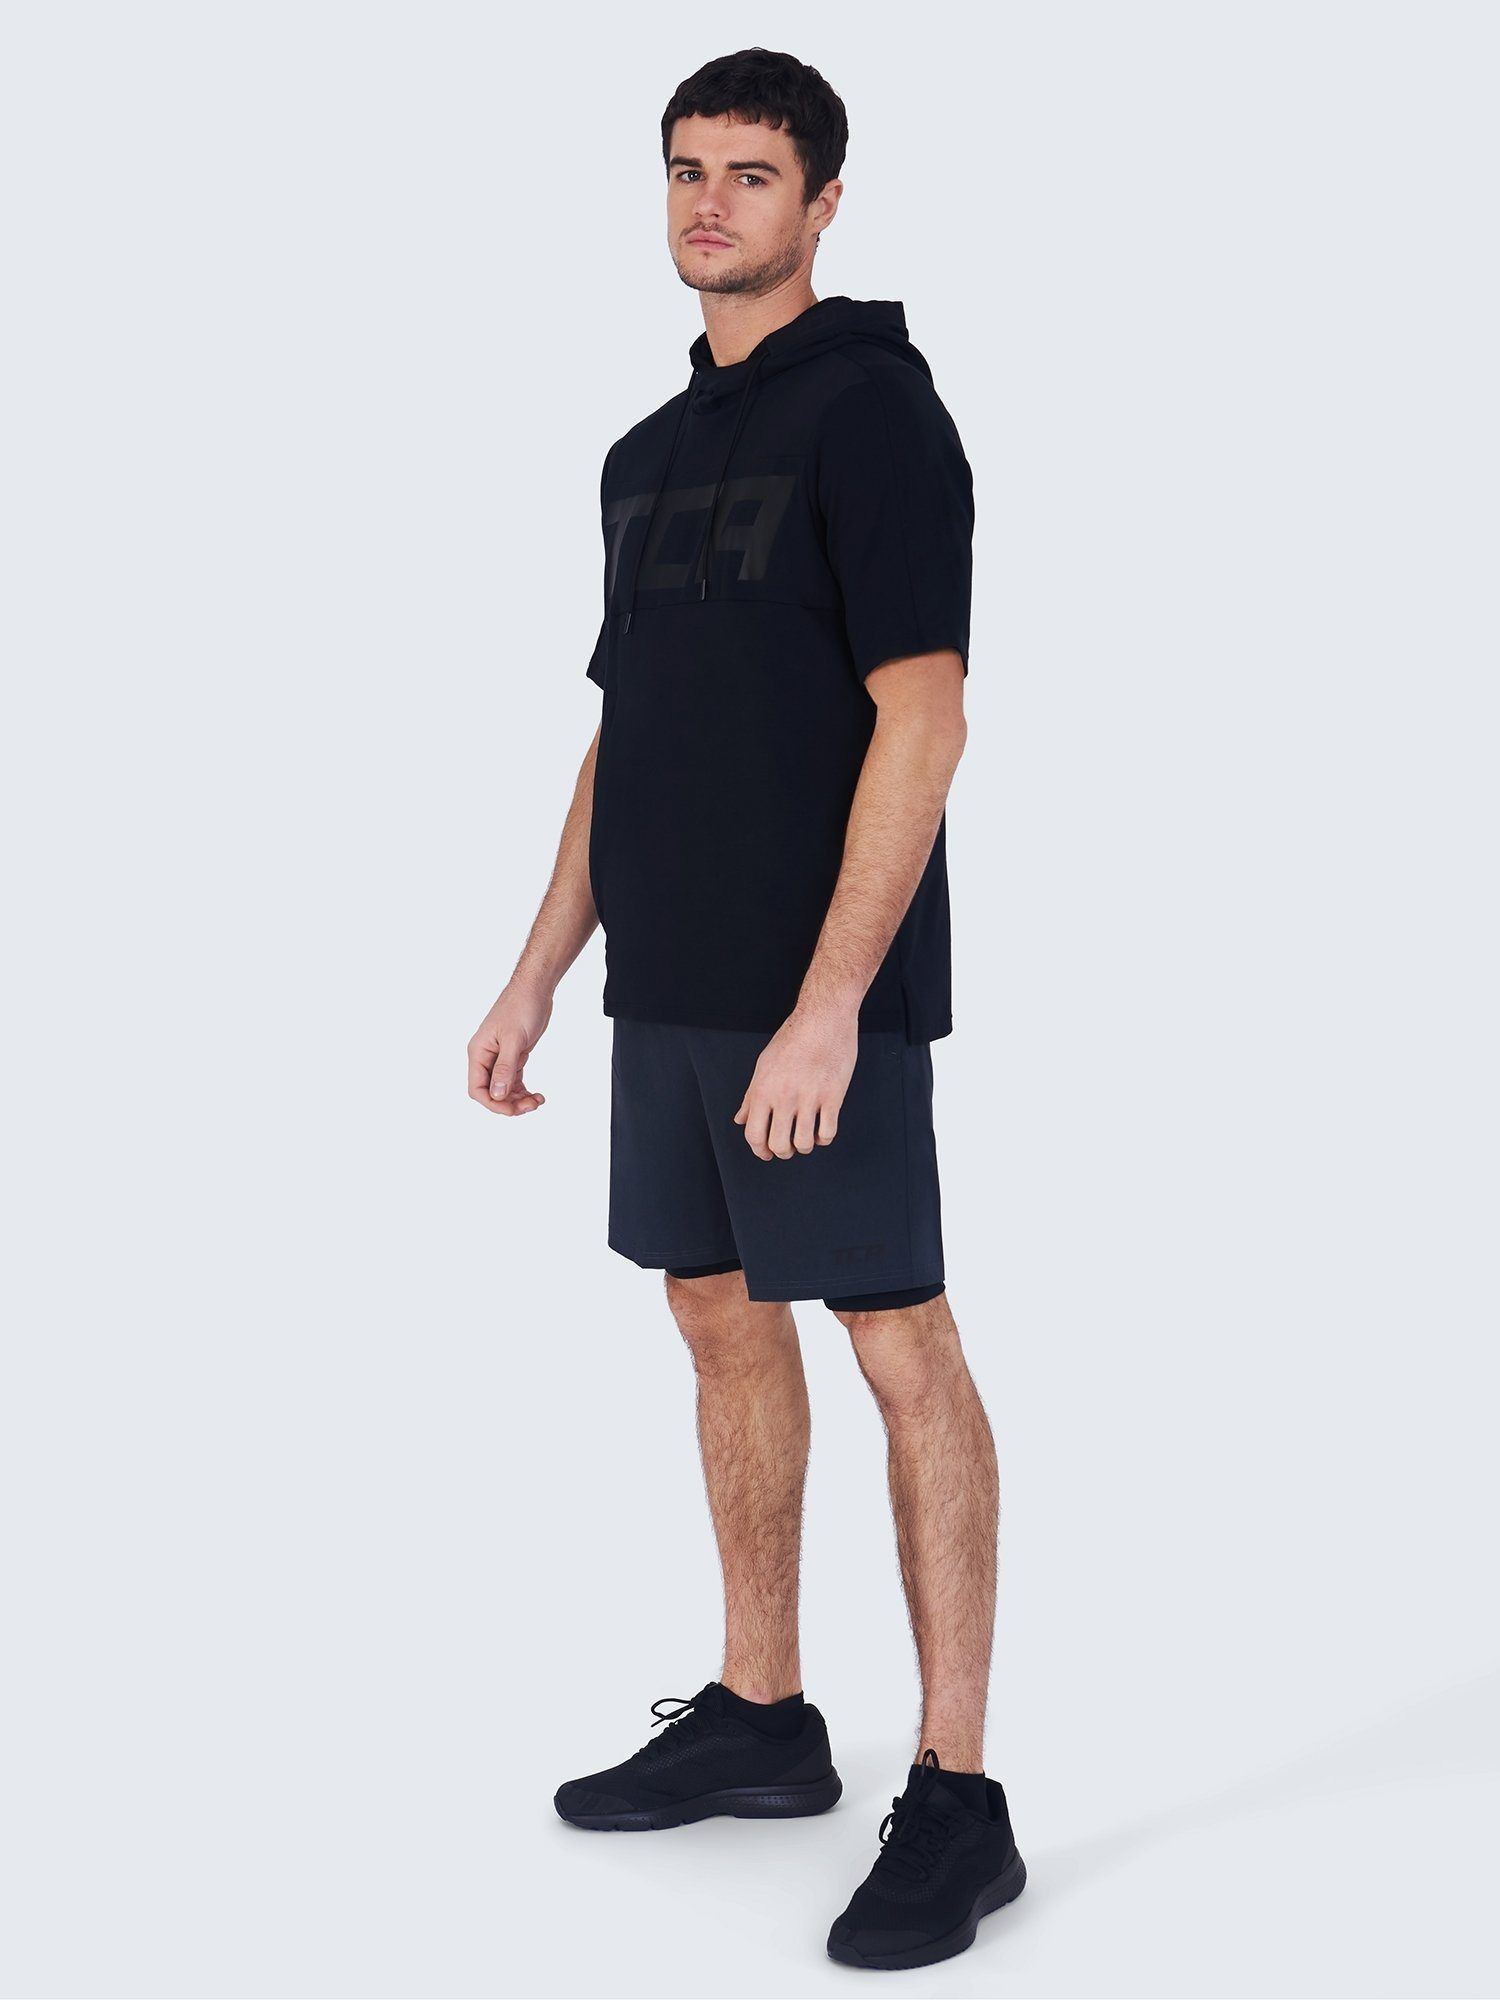 TCA Tech Pack: Challenger Sweat Tech Hoodie + Utility 2-in-1 Short